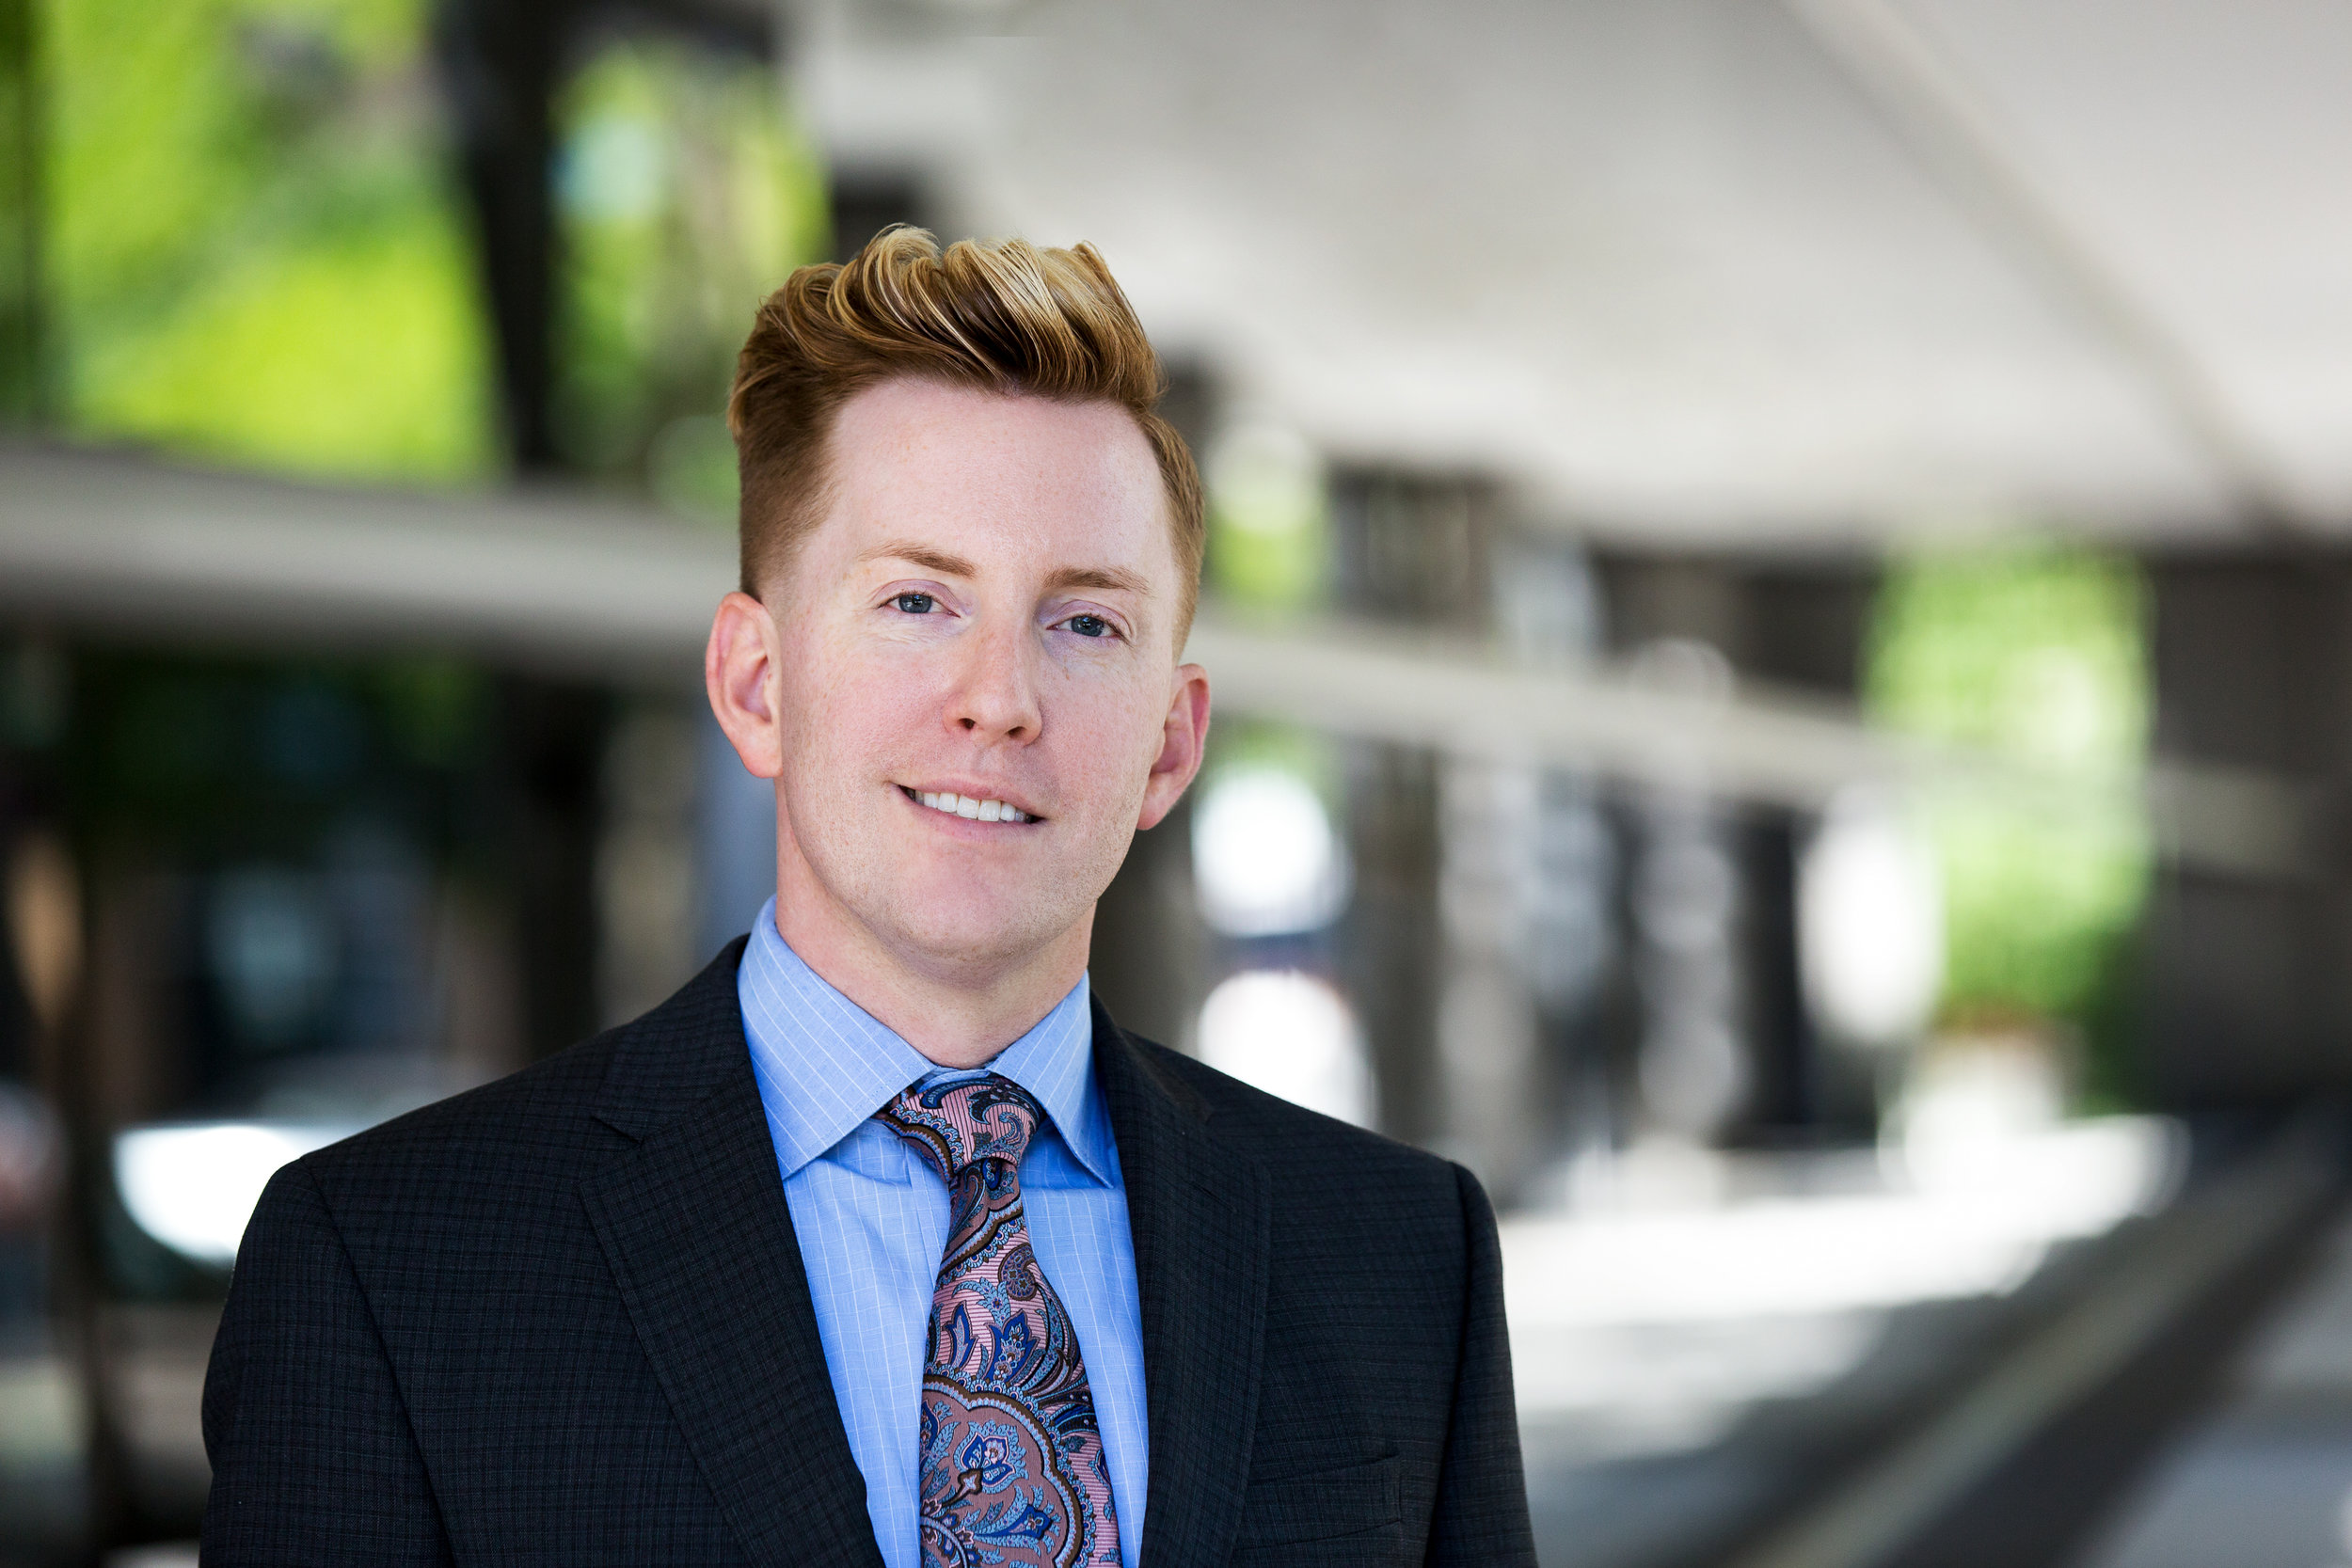 Here's an example of a corporate headshot taken outside of a professional office building. This environment provided us with a slightly more unique and natural look, while still looking professional.